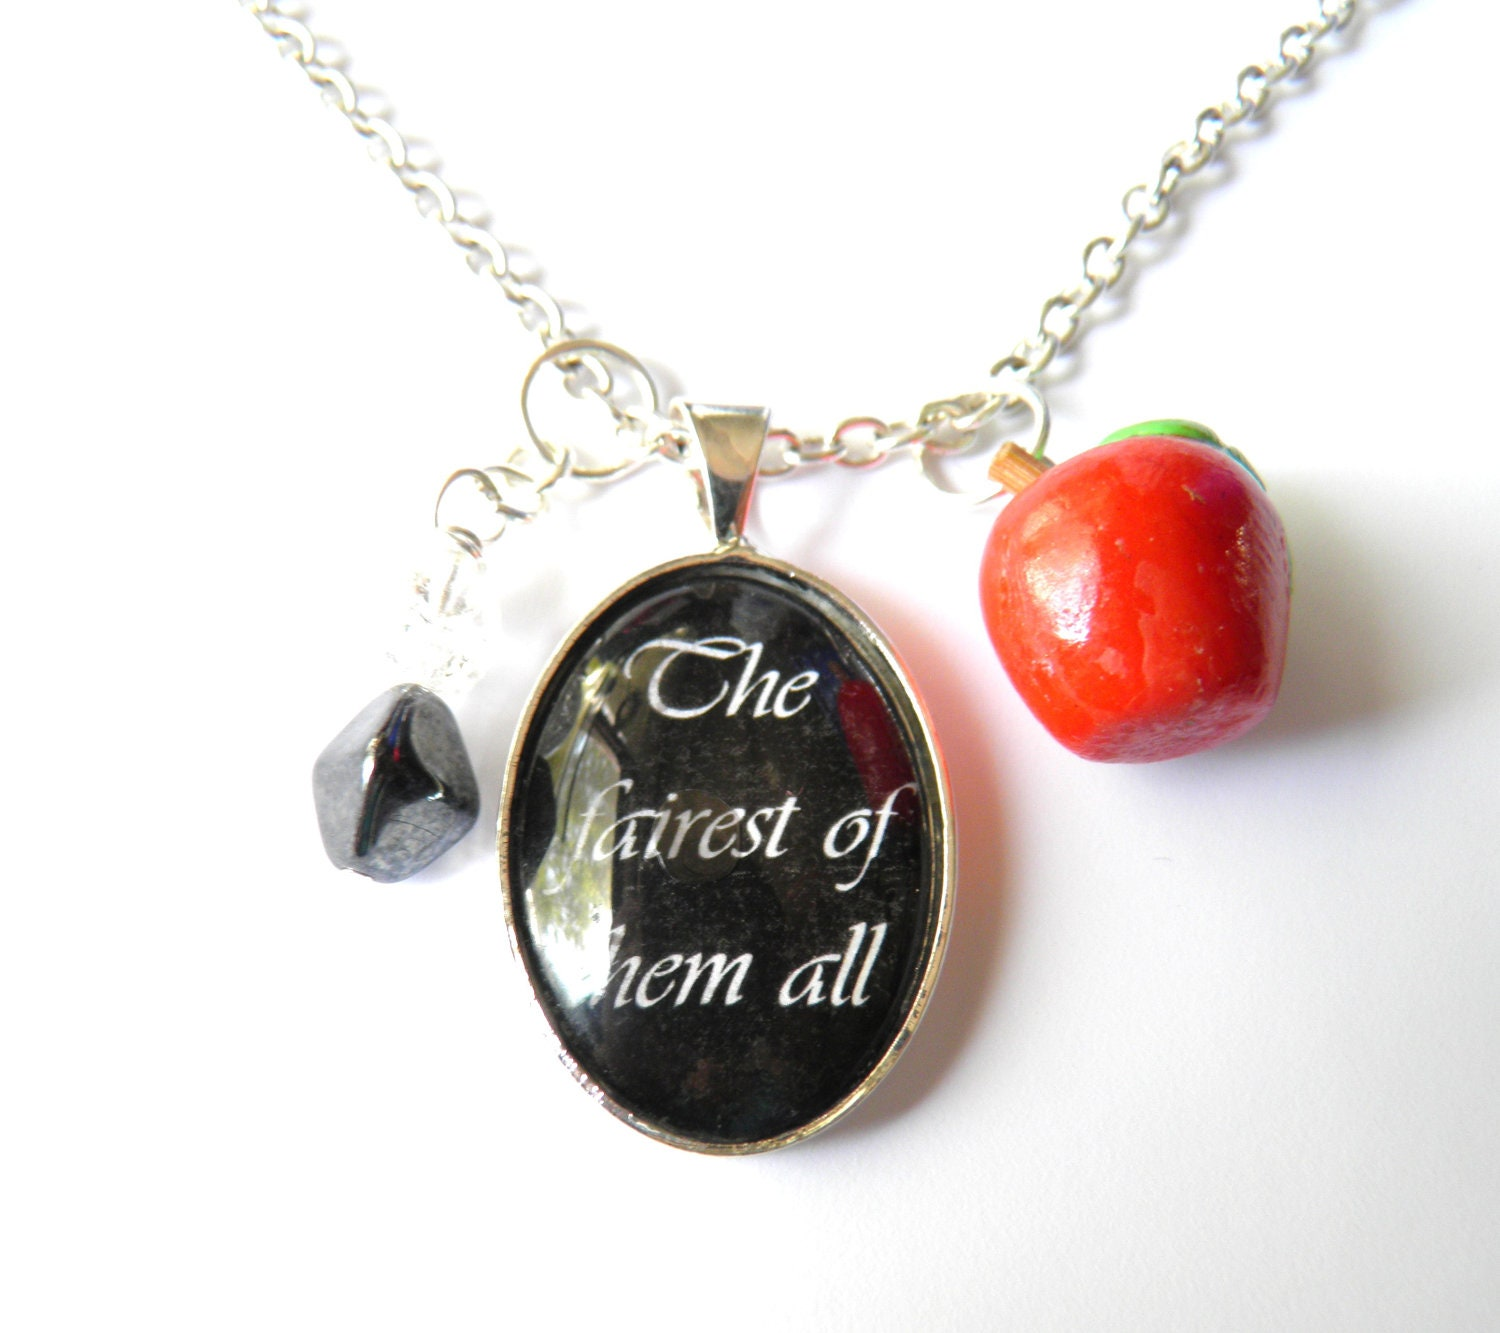 Snow White Necklace -The fairest of them all- - RobeeTwist